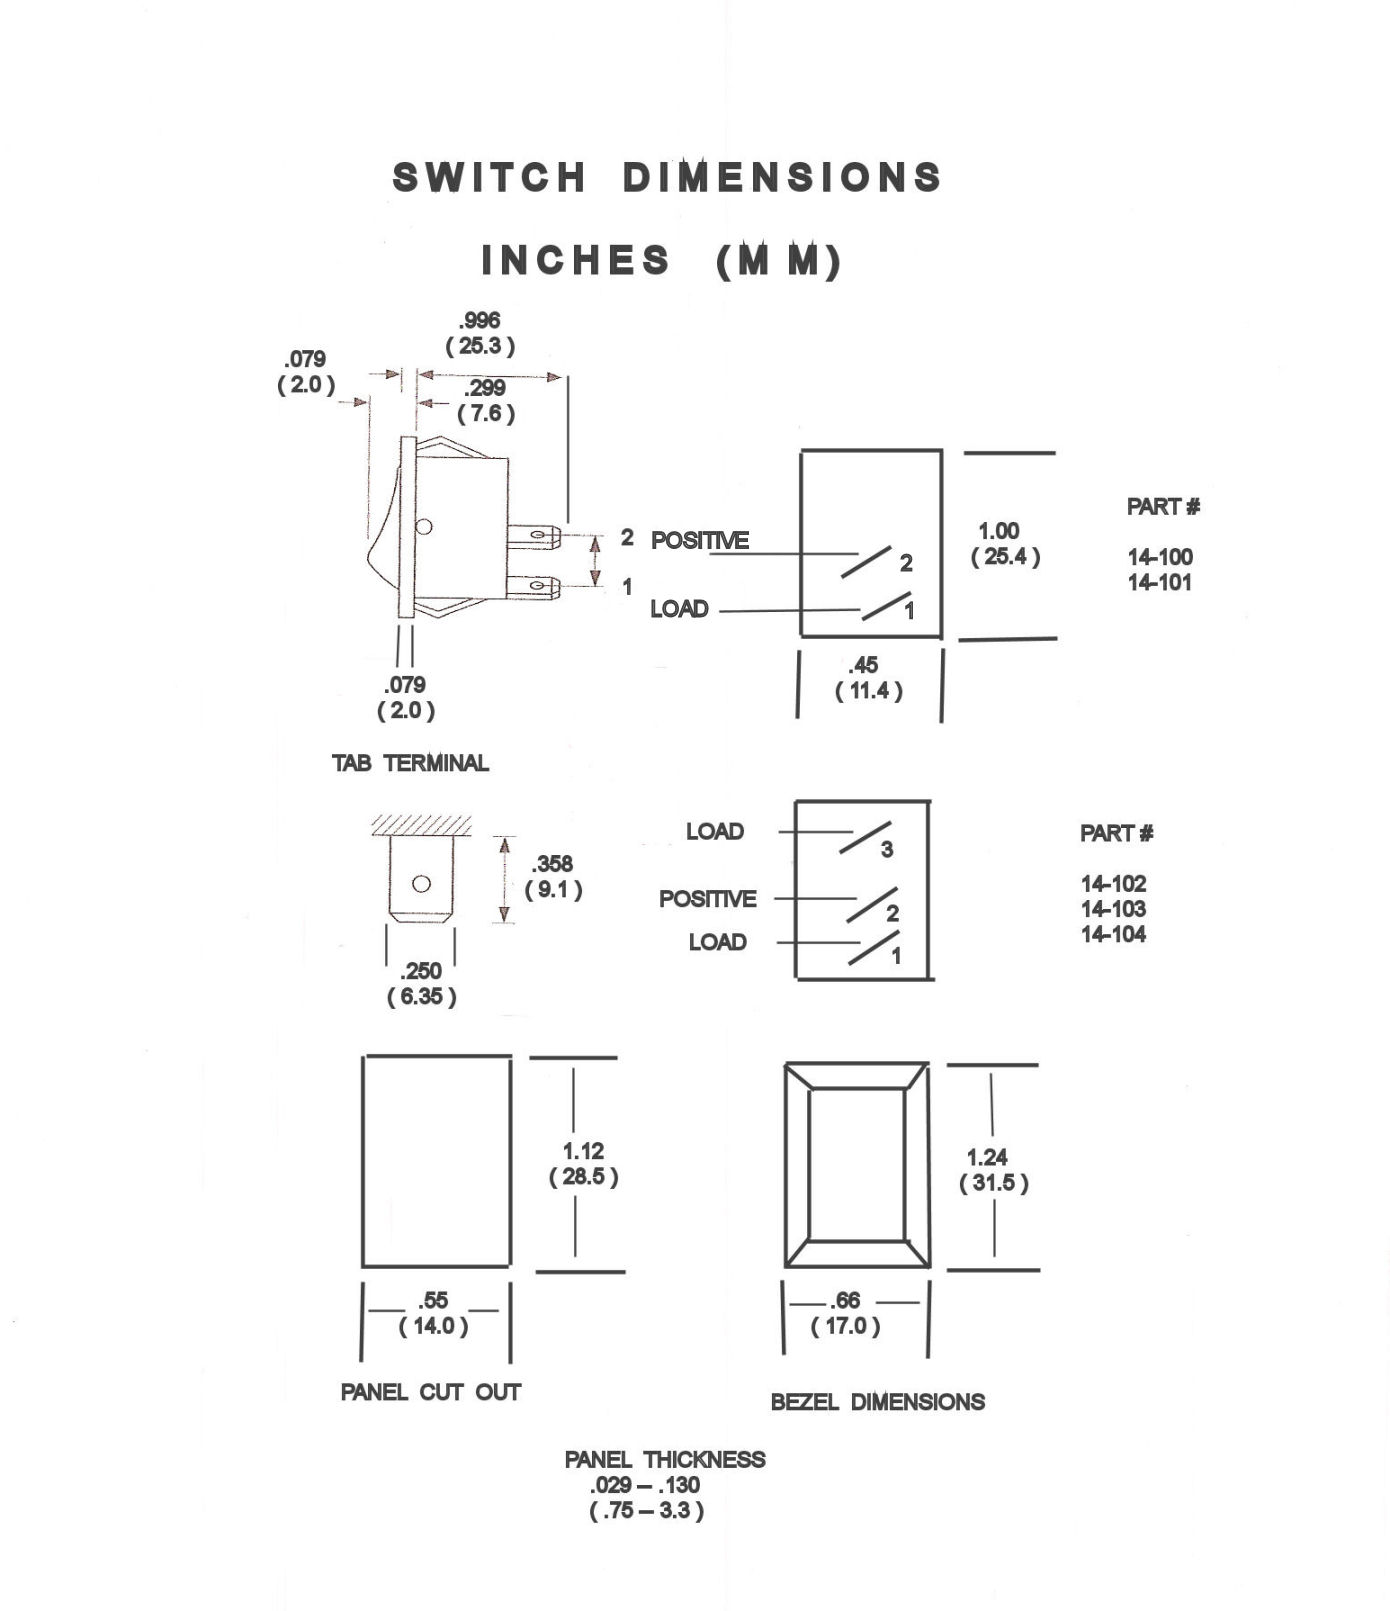 Wiring Diagram Illuminated Switch : Are these or volt rocker switches